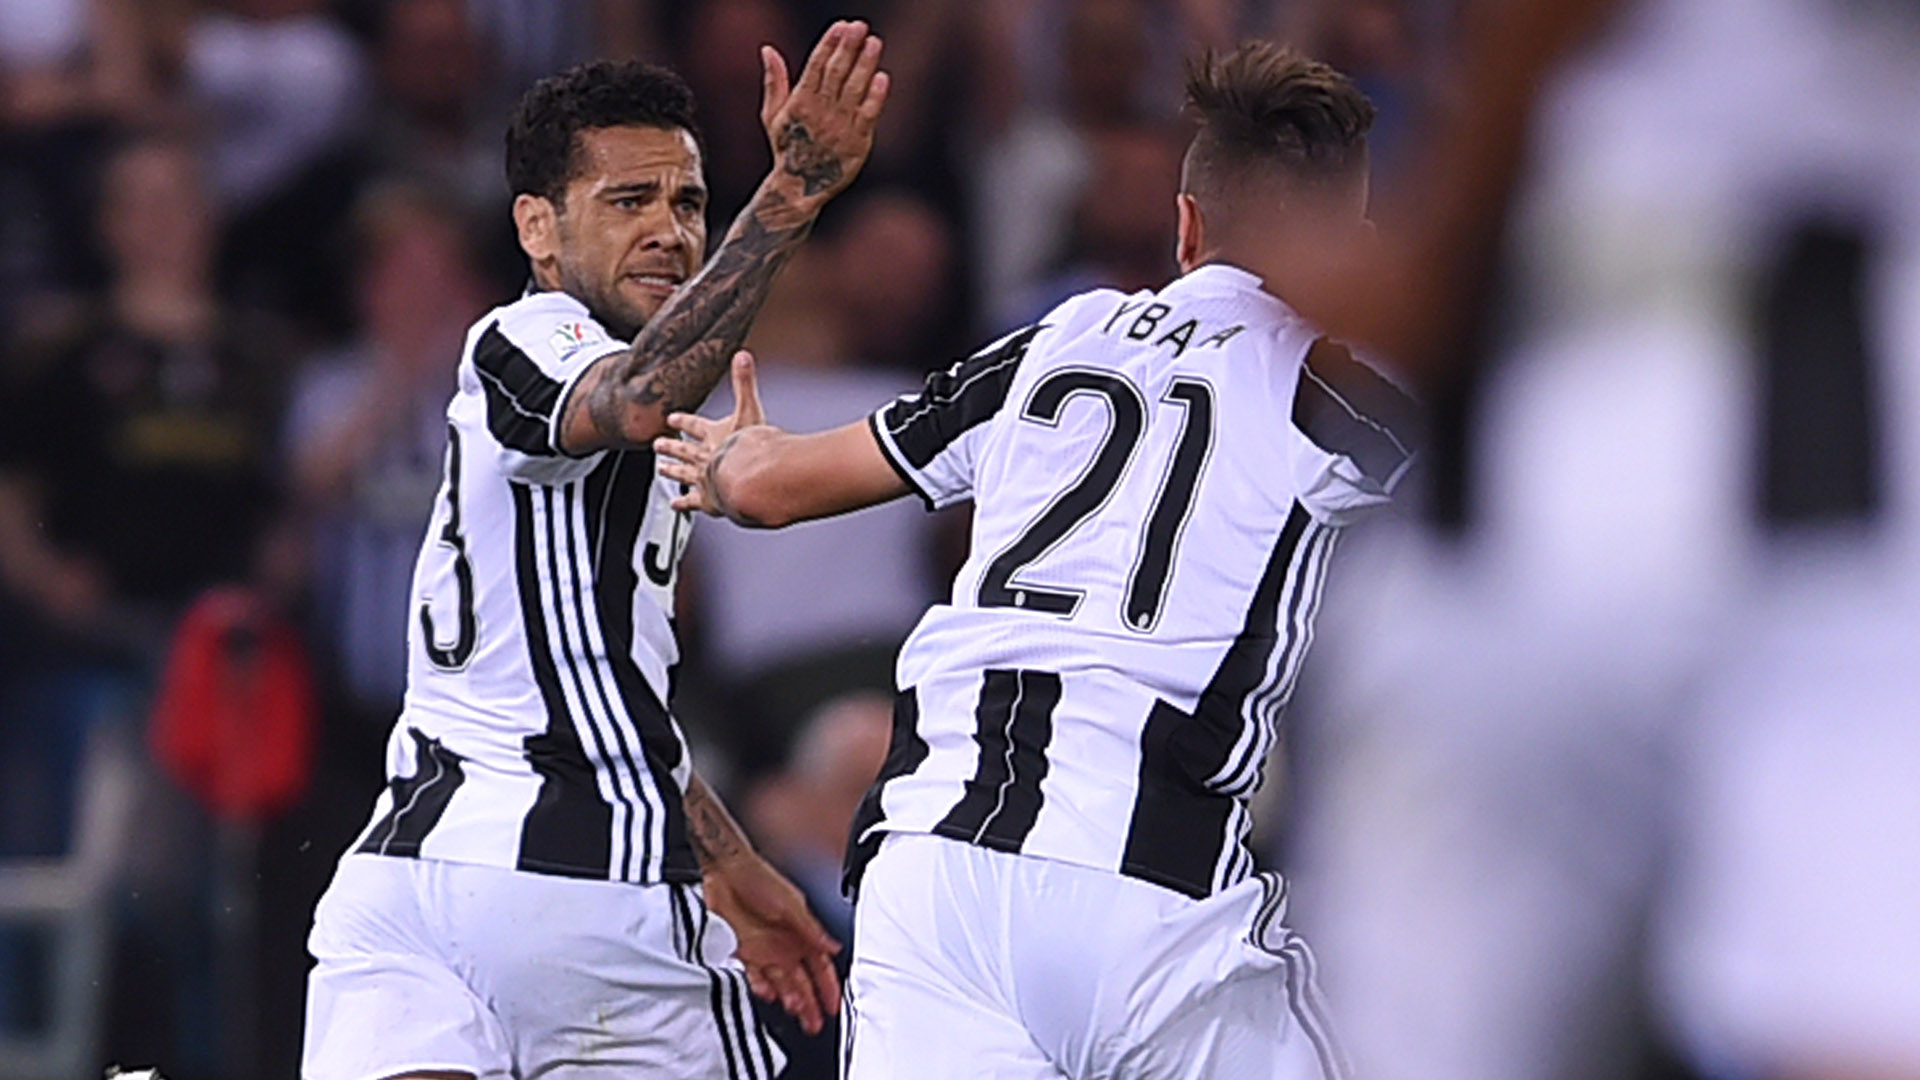 Dani Alves Juventus celebrating Coppa Italia